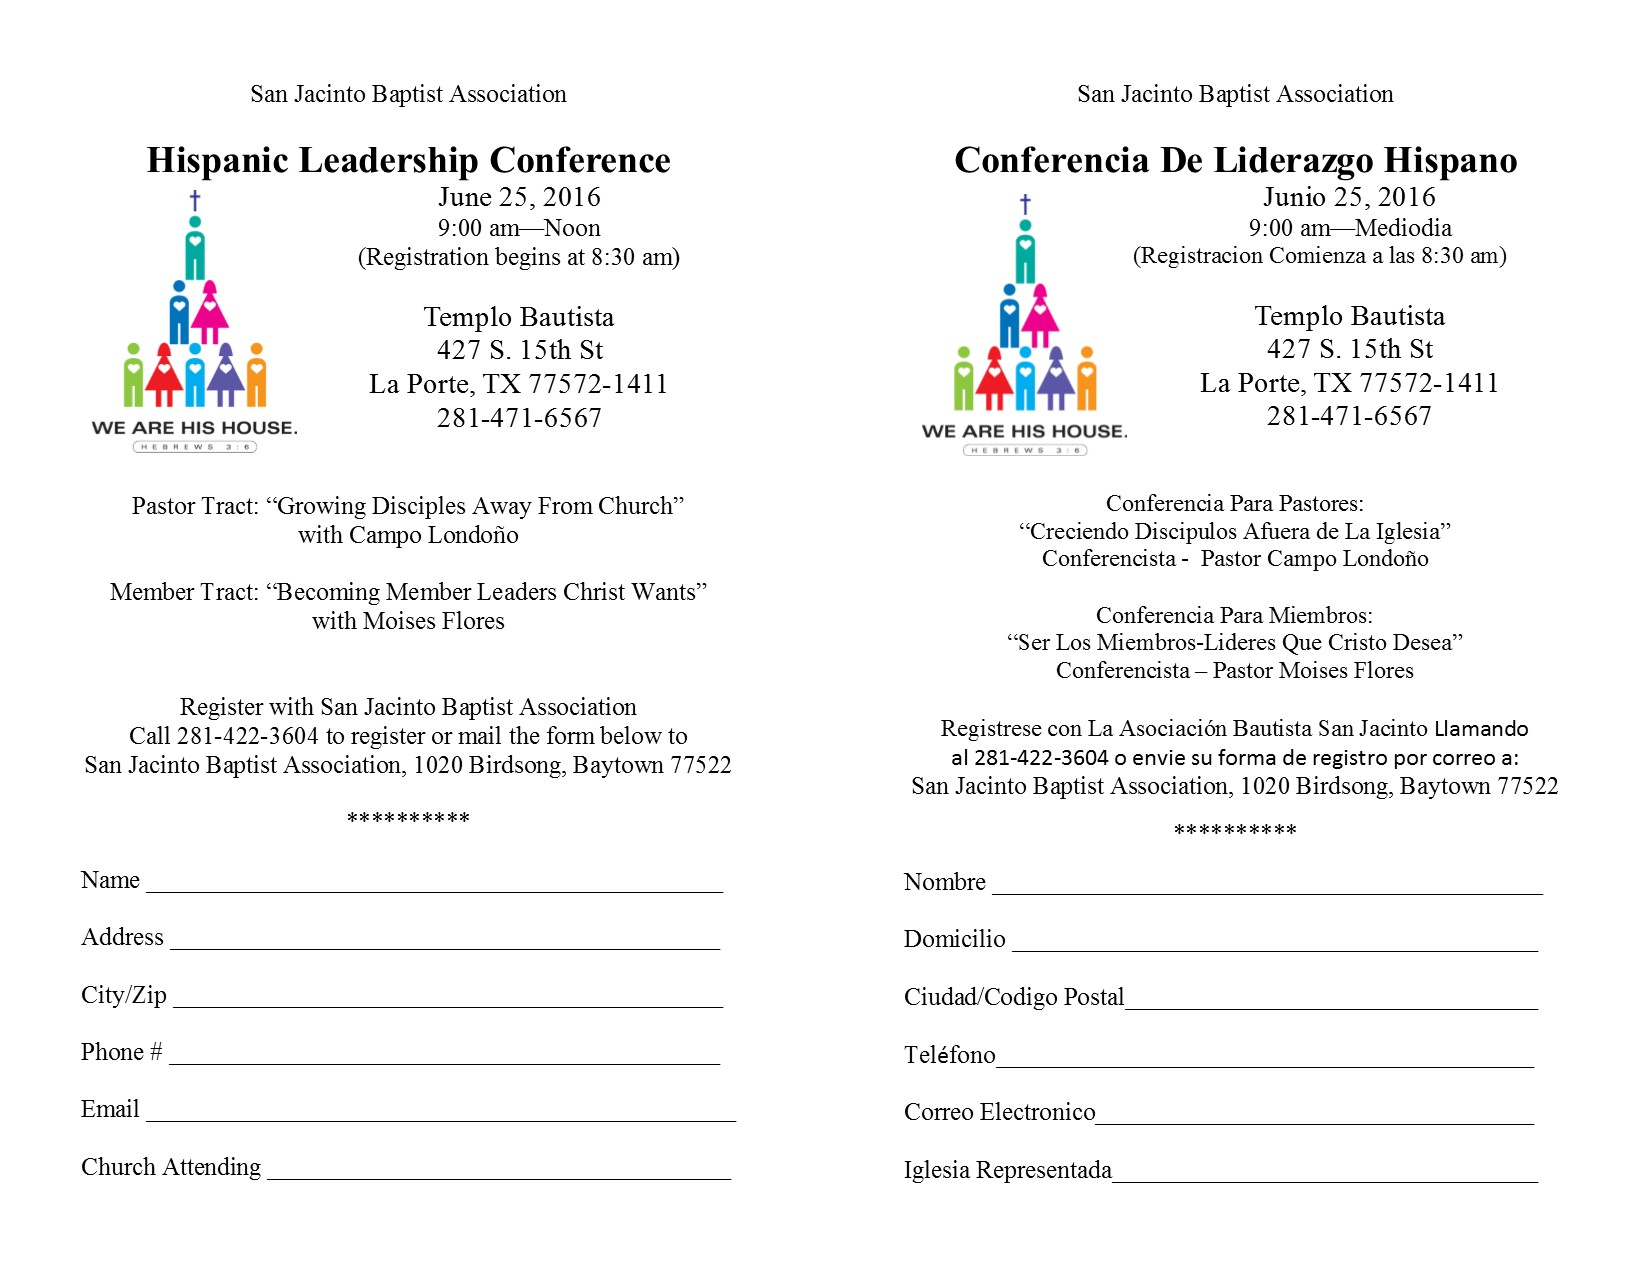 Hispanic Leadership Conference June 25th